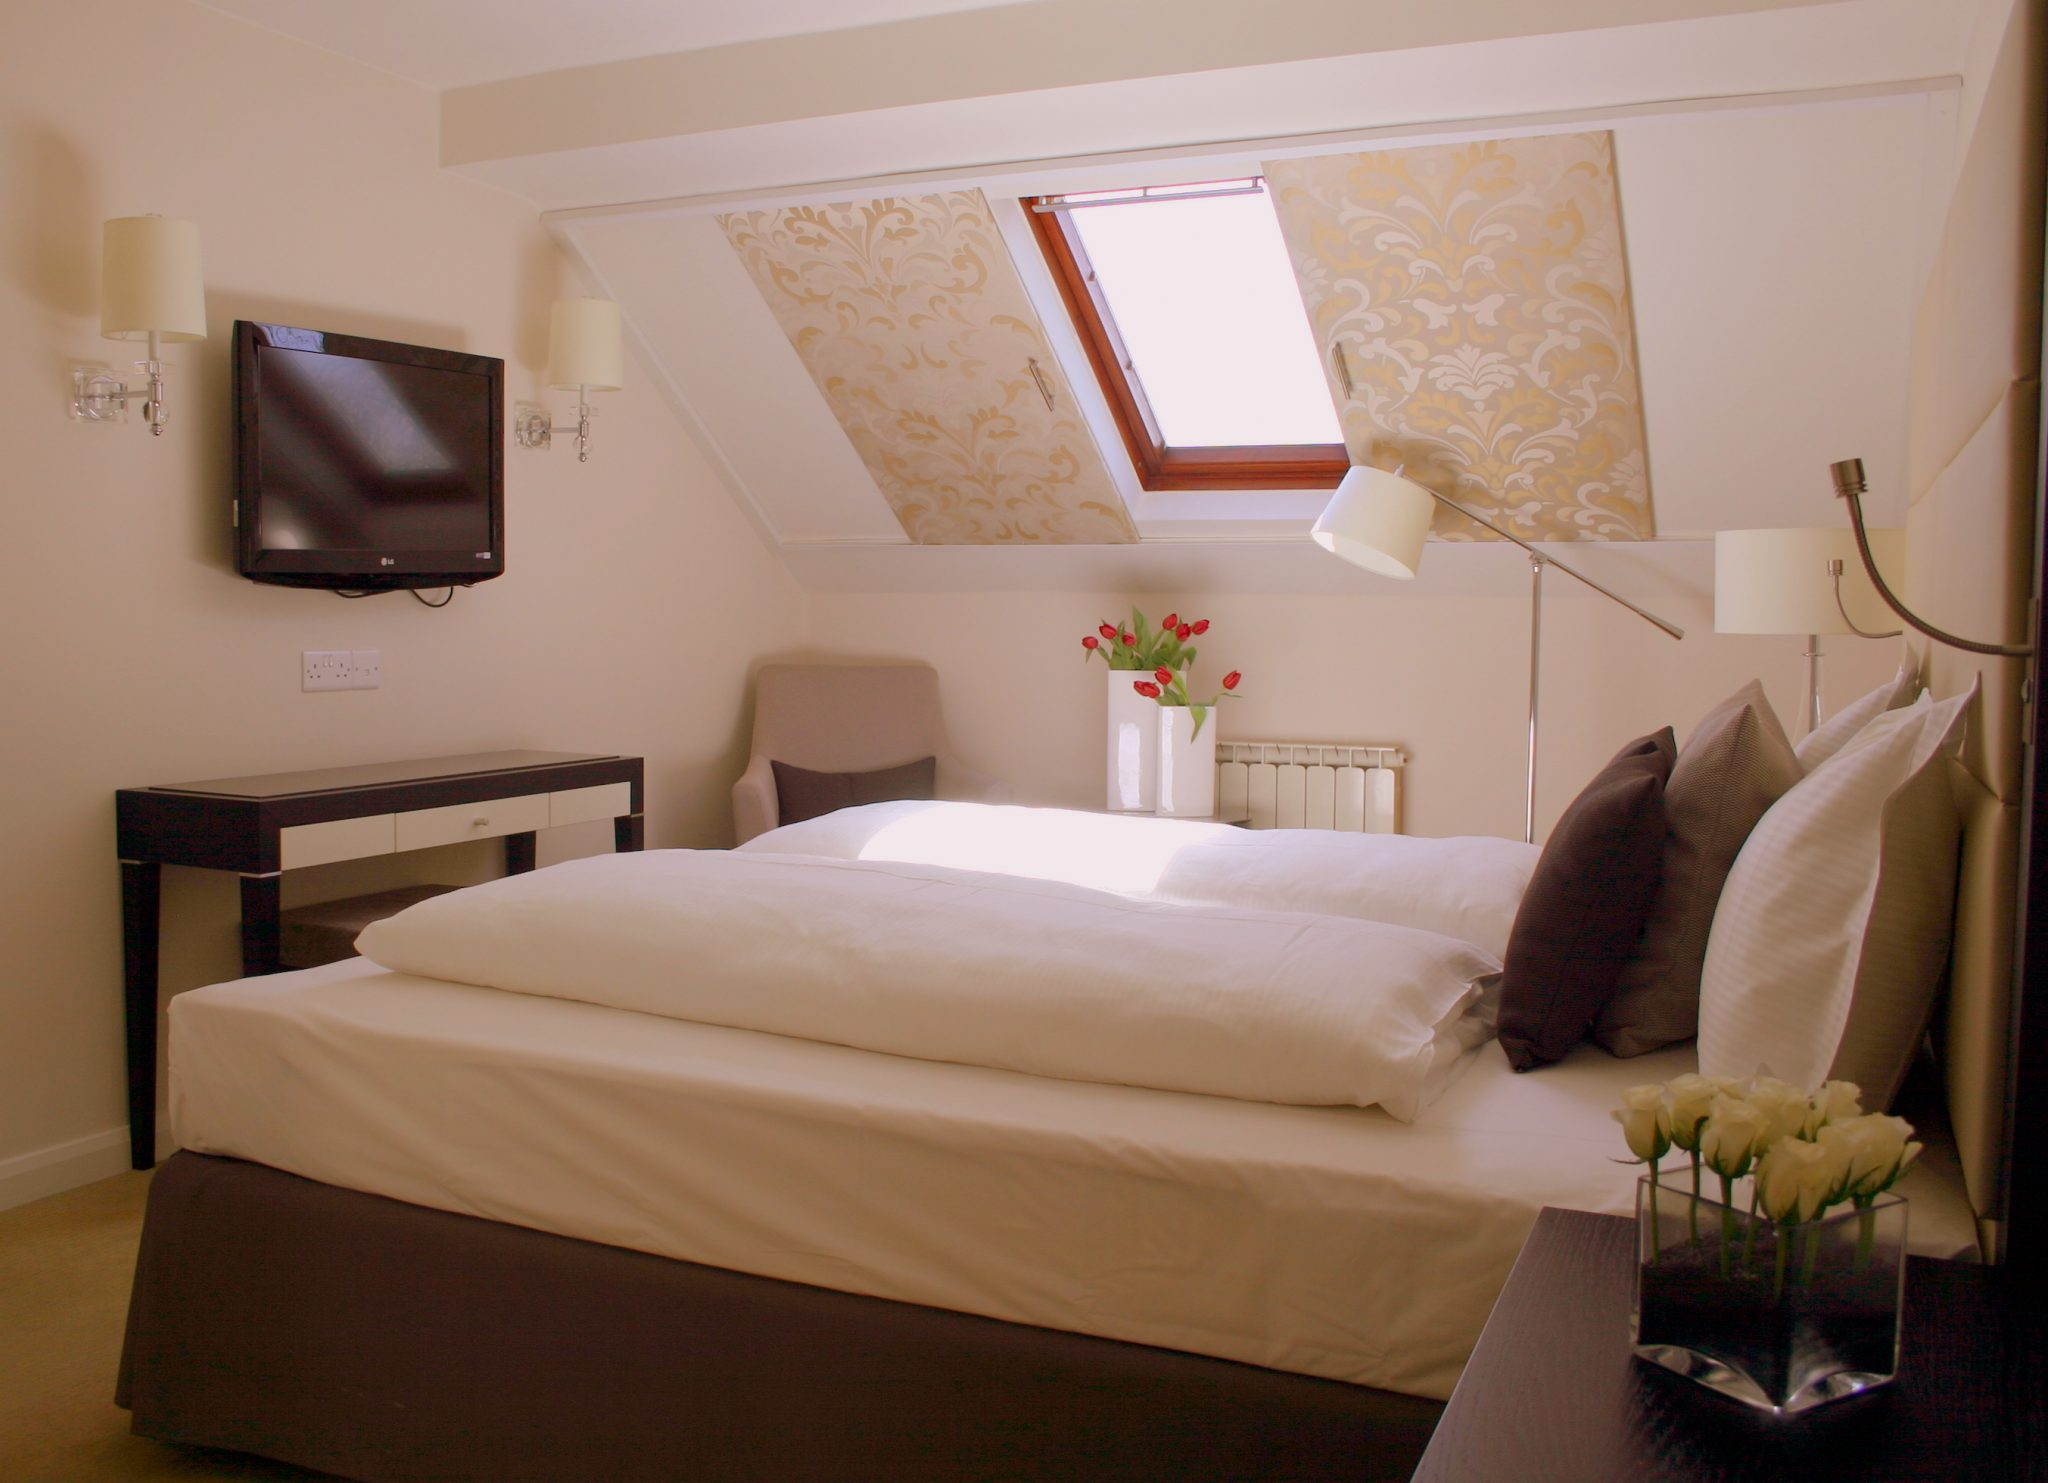 Rooms & Rates for Number Four at Stow | Stow-on-the-Wold